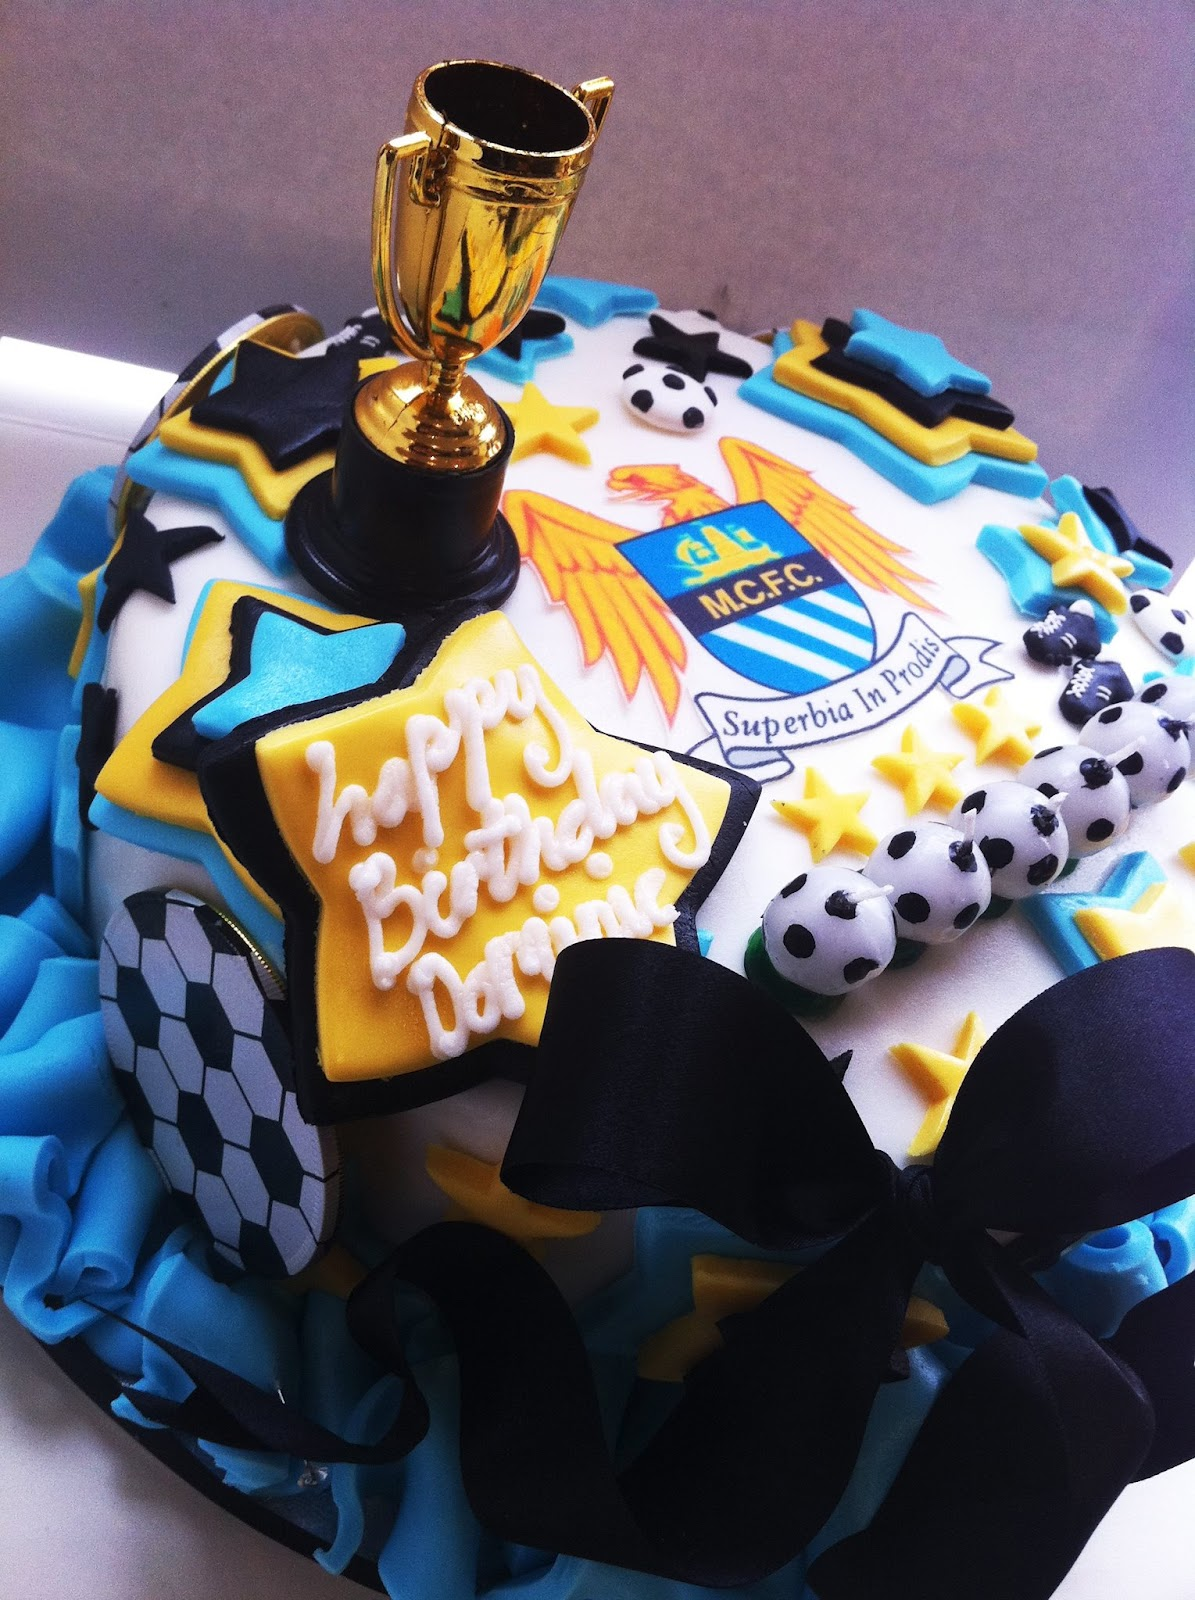 Iced Out Company Cakes!: Manchester City Cake...